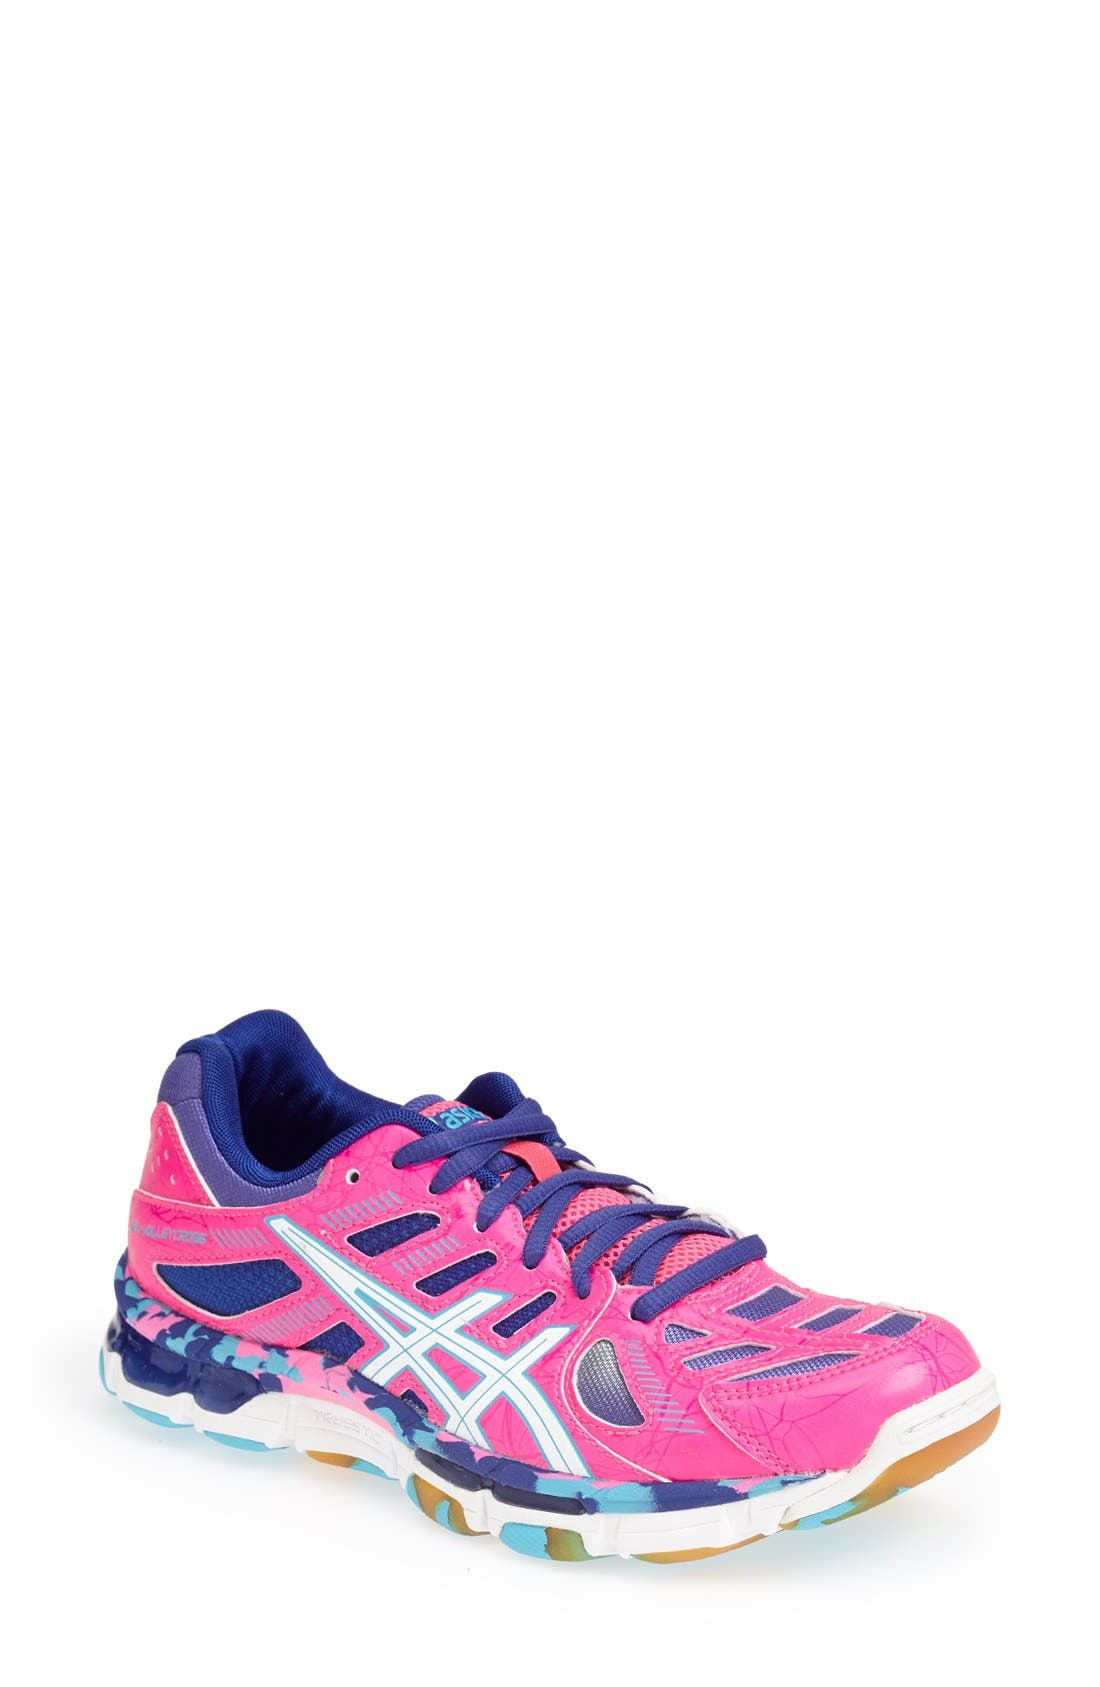 Alternate Image 1 Selected - ASICS® 'GEL-Volleycross® Revolution' Volleyball Shoe (Women) (Regular Retail Price: 109.95)